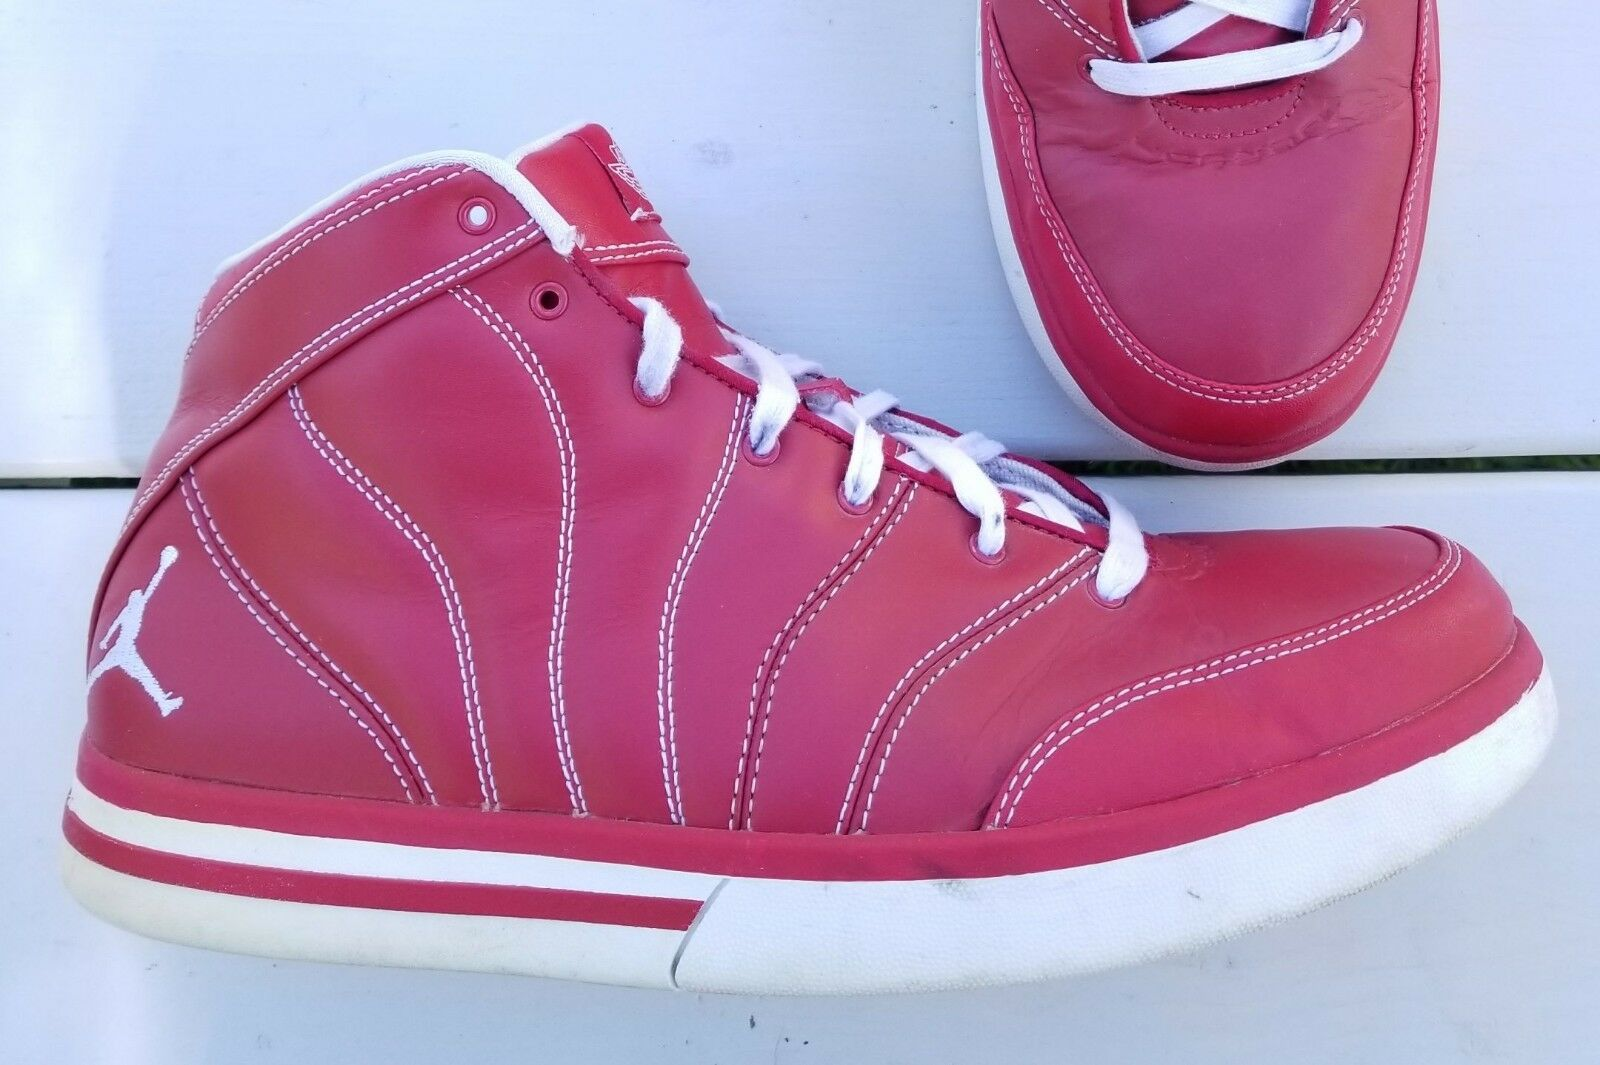 Nike AIR JORDAN Pro Classic High SOLID RED size 10.5 Mens Price reduction 363141-611 Wild casual shoes